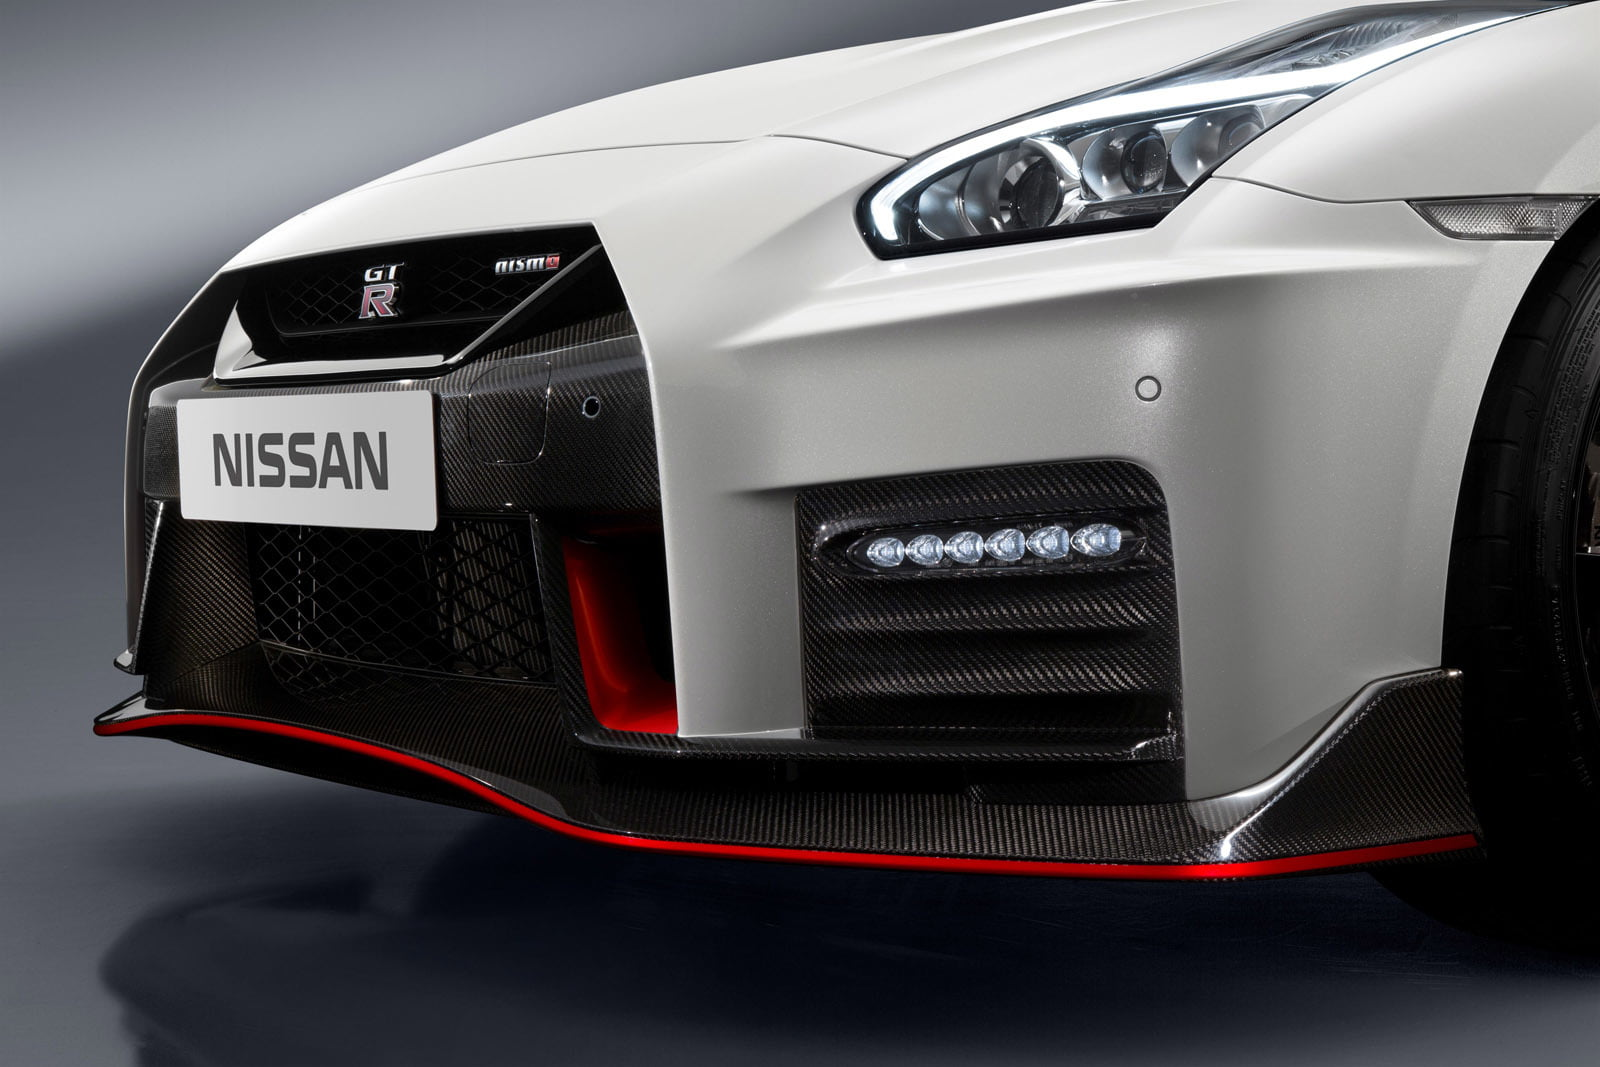 detalle frontal nissan gt-r nismo 2017 (1)